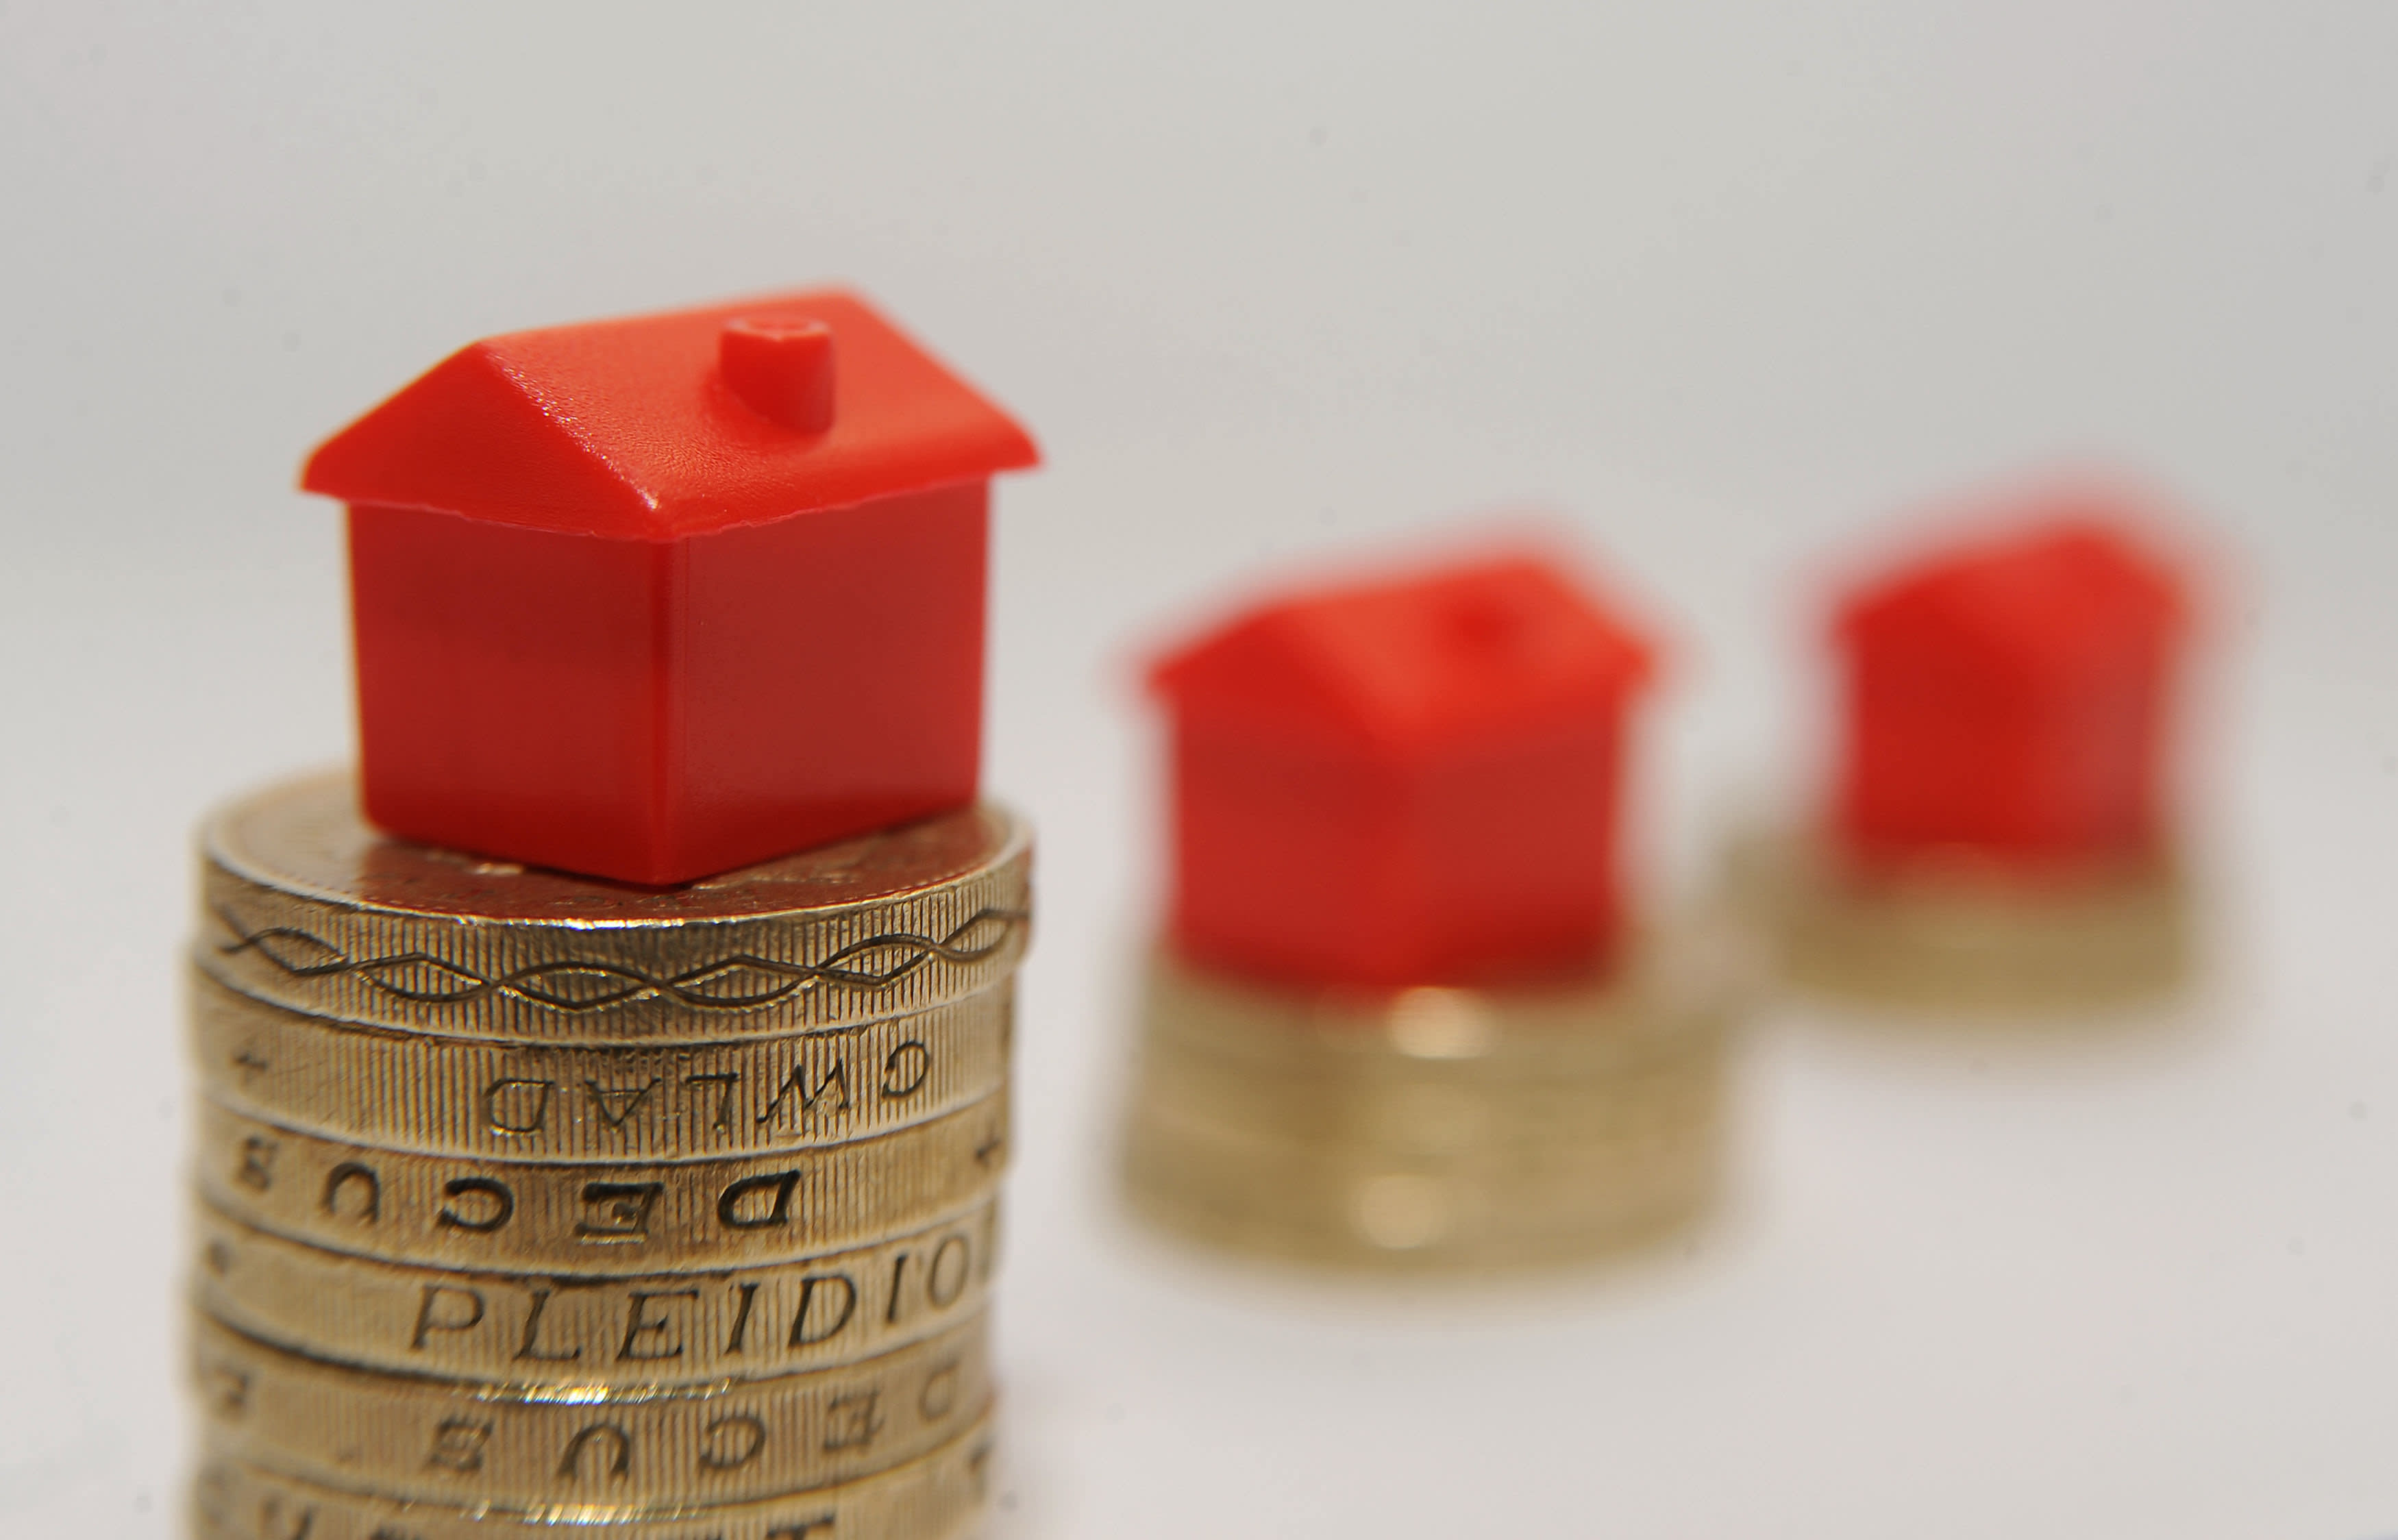 Buy-to-let returns down 2.3% on a year ago